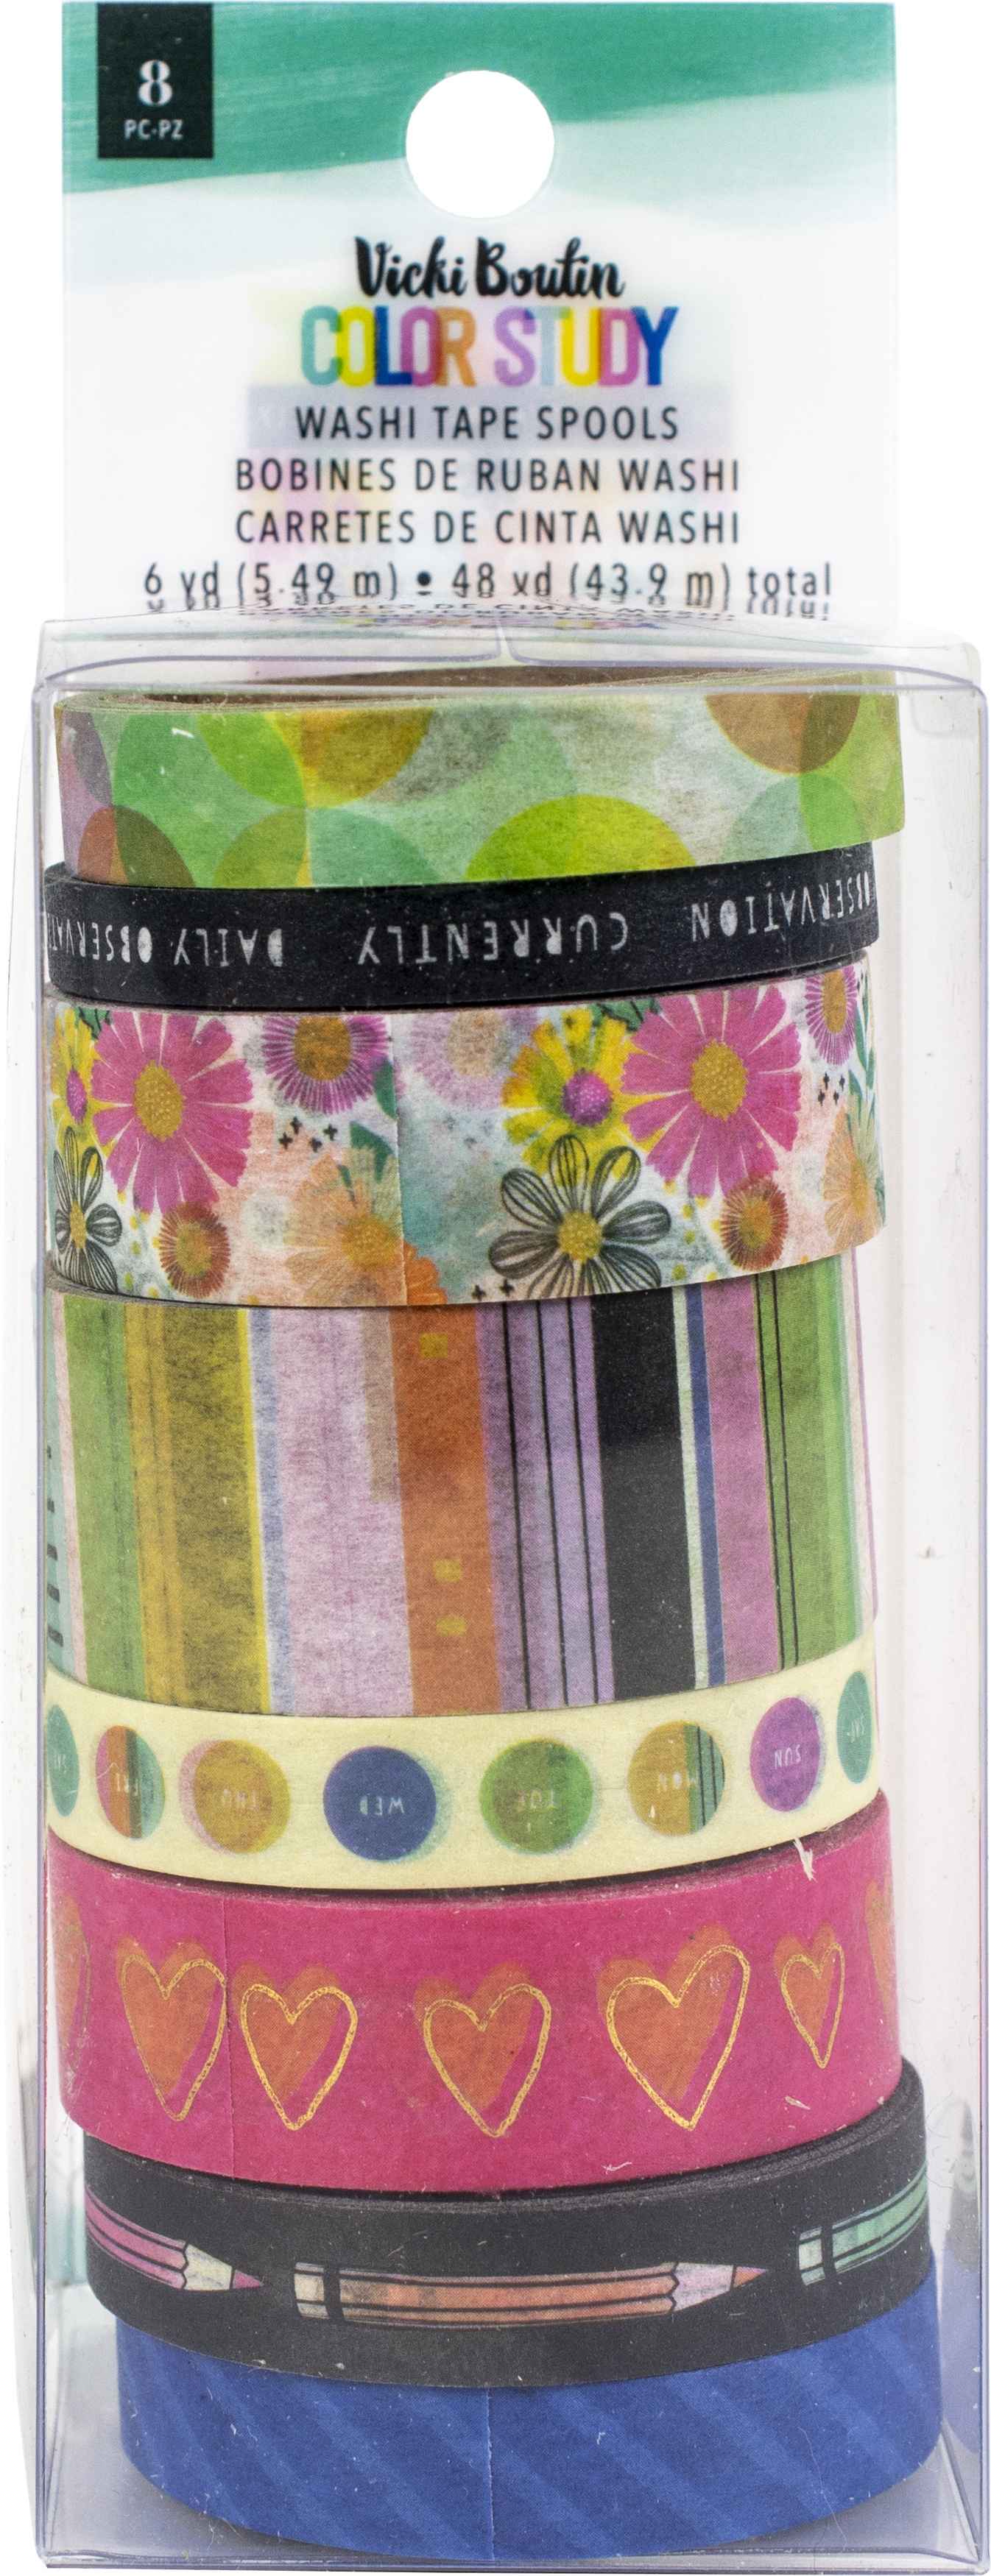 Vicki Boutin Color Study Washi Tape 8/Pkg